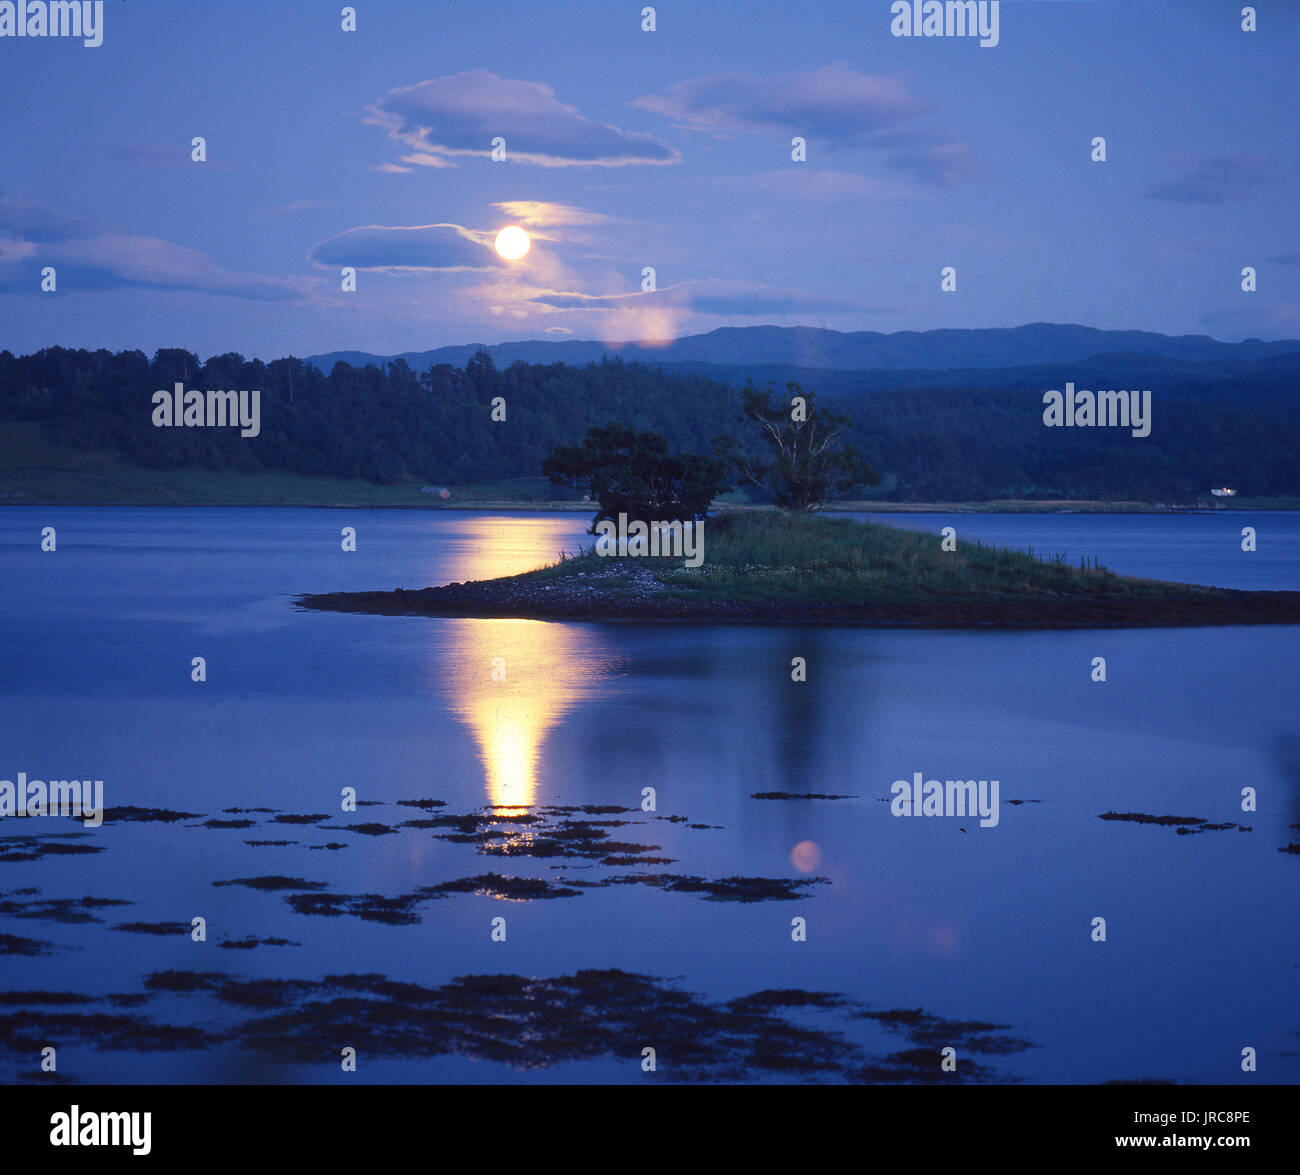 Moonshine reflects on the still waters of Loch Etive, Argyll - Stock Image